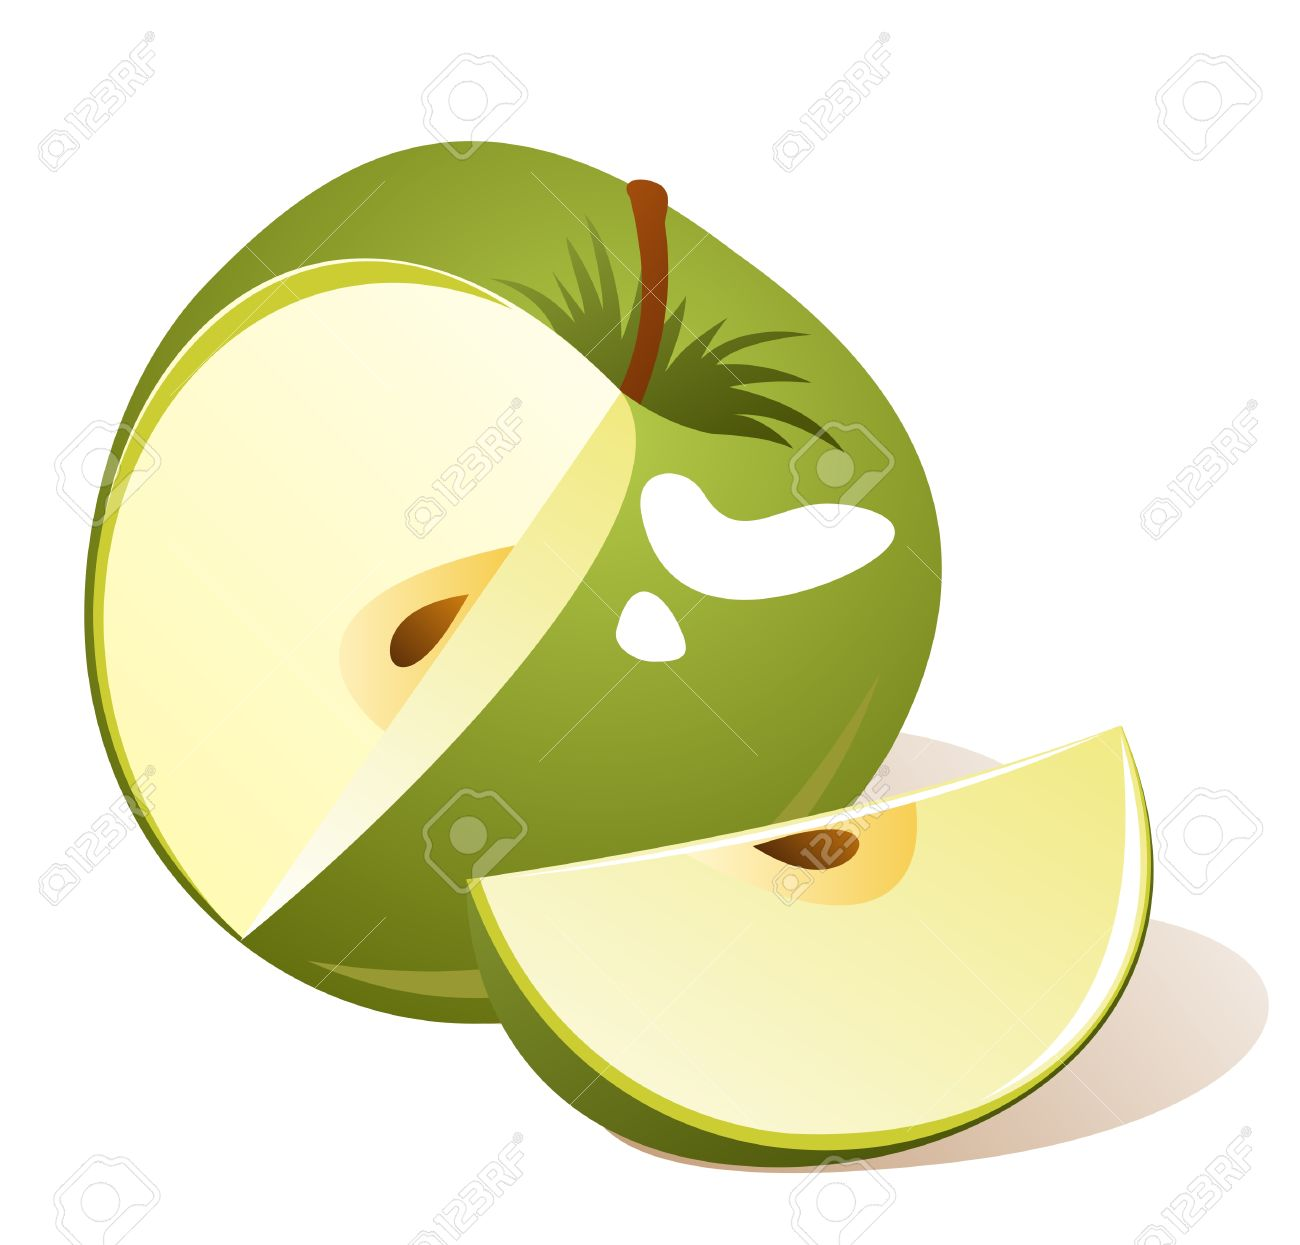 Stylized green apple with slice isolated on a white background..